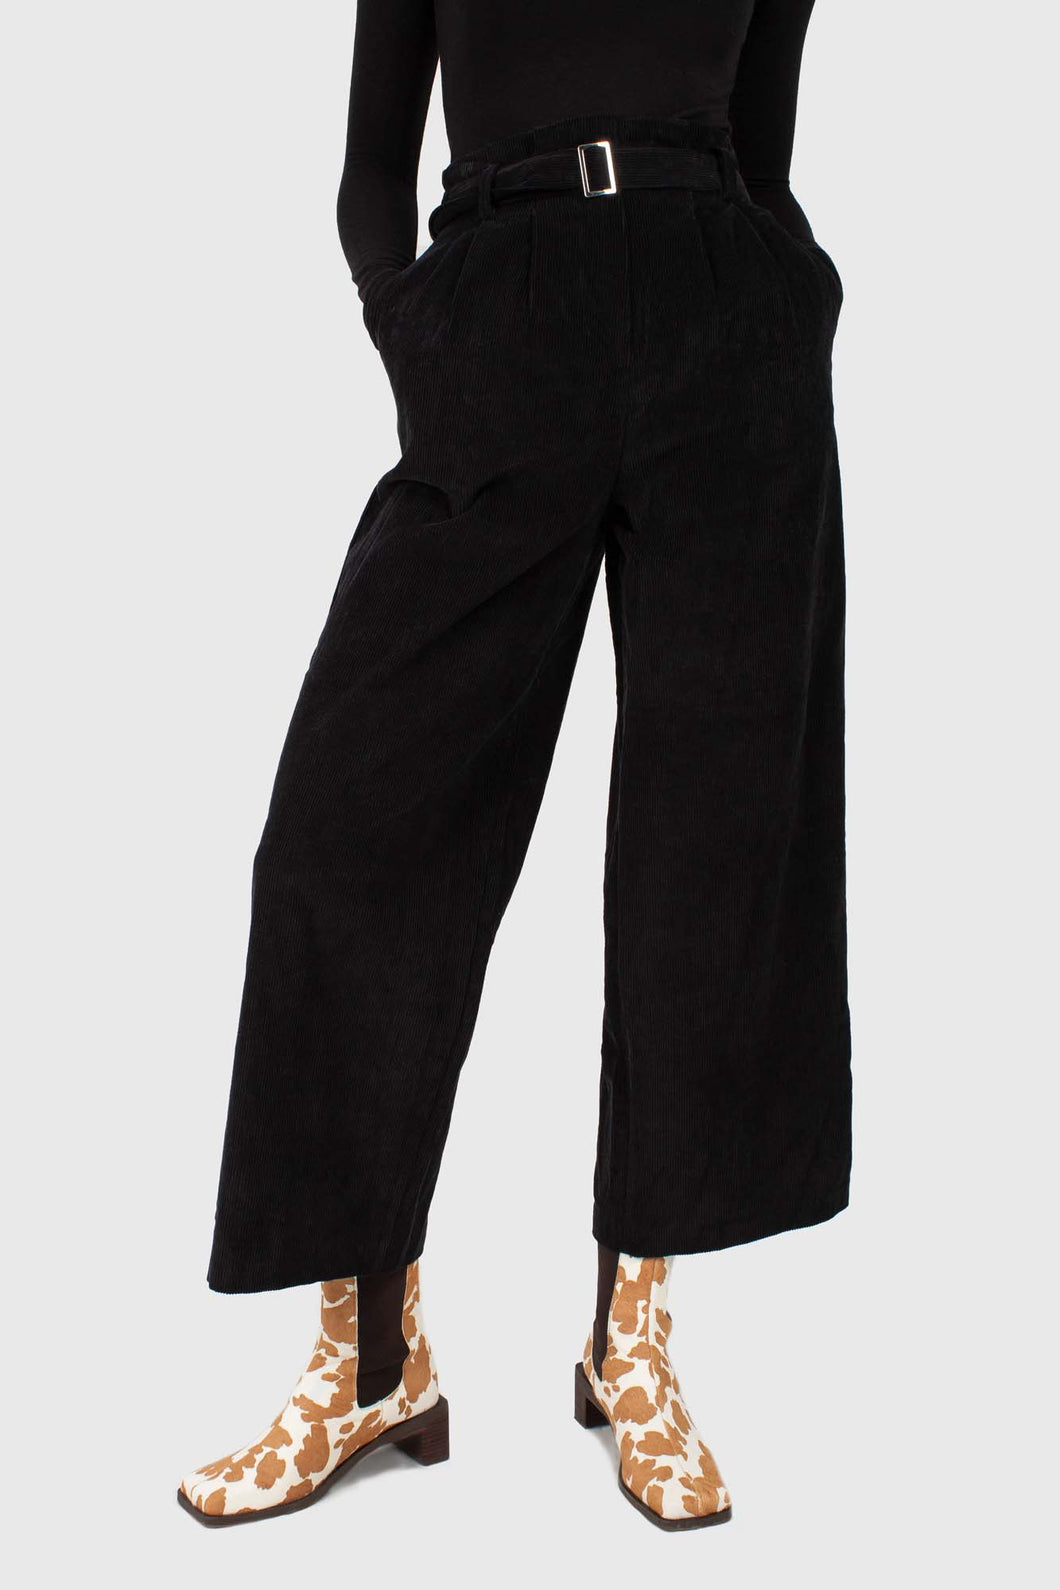 Black high waisted belted corduroy trousers1